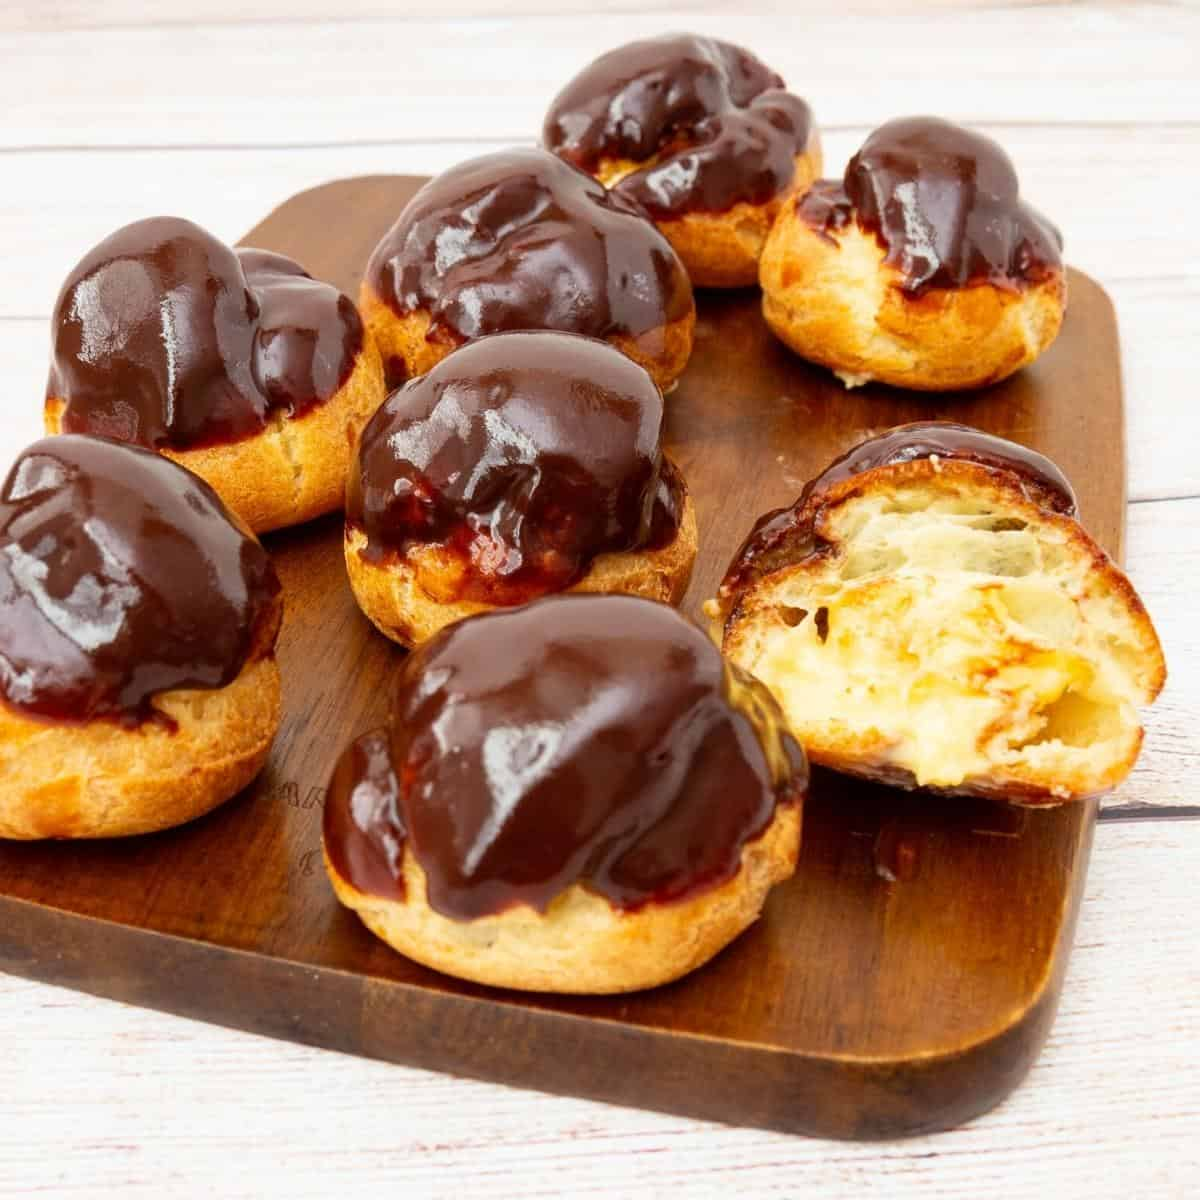 A wooden board with cream puffs stuffed with pastry cream.